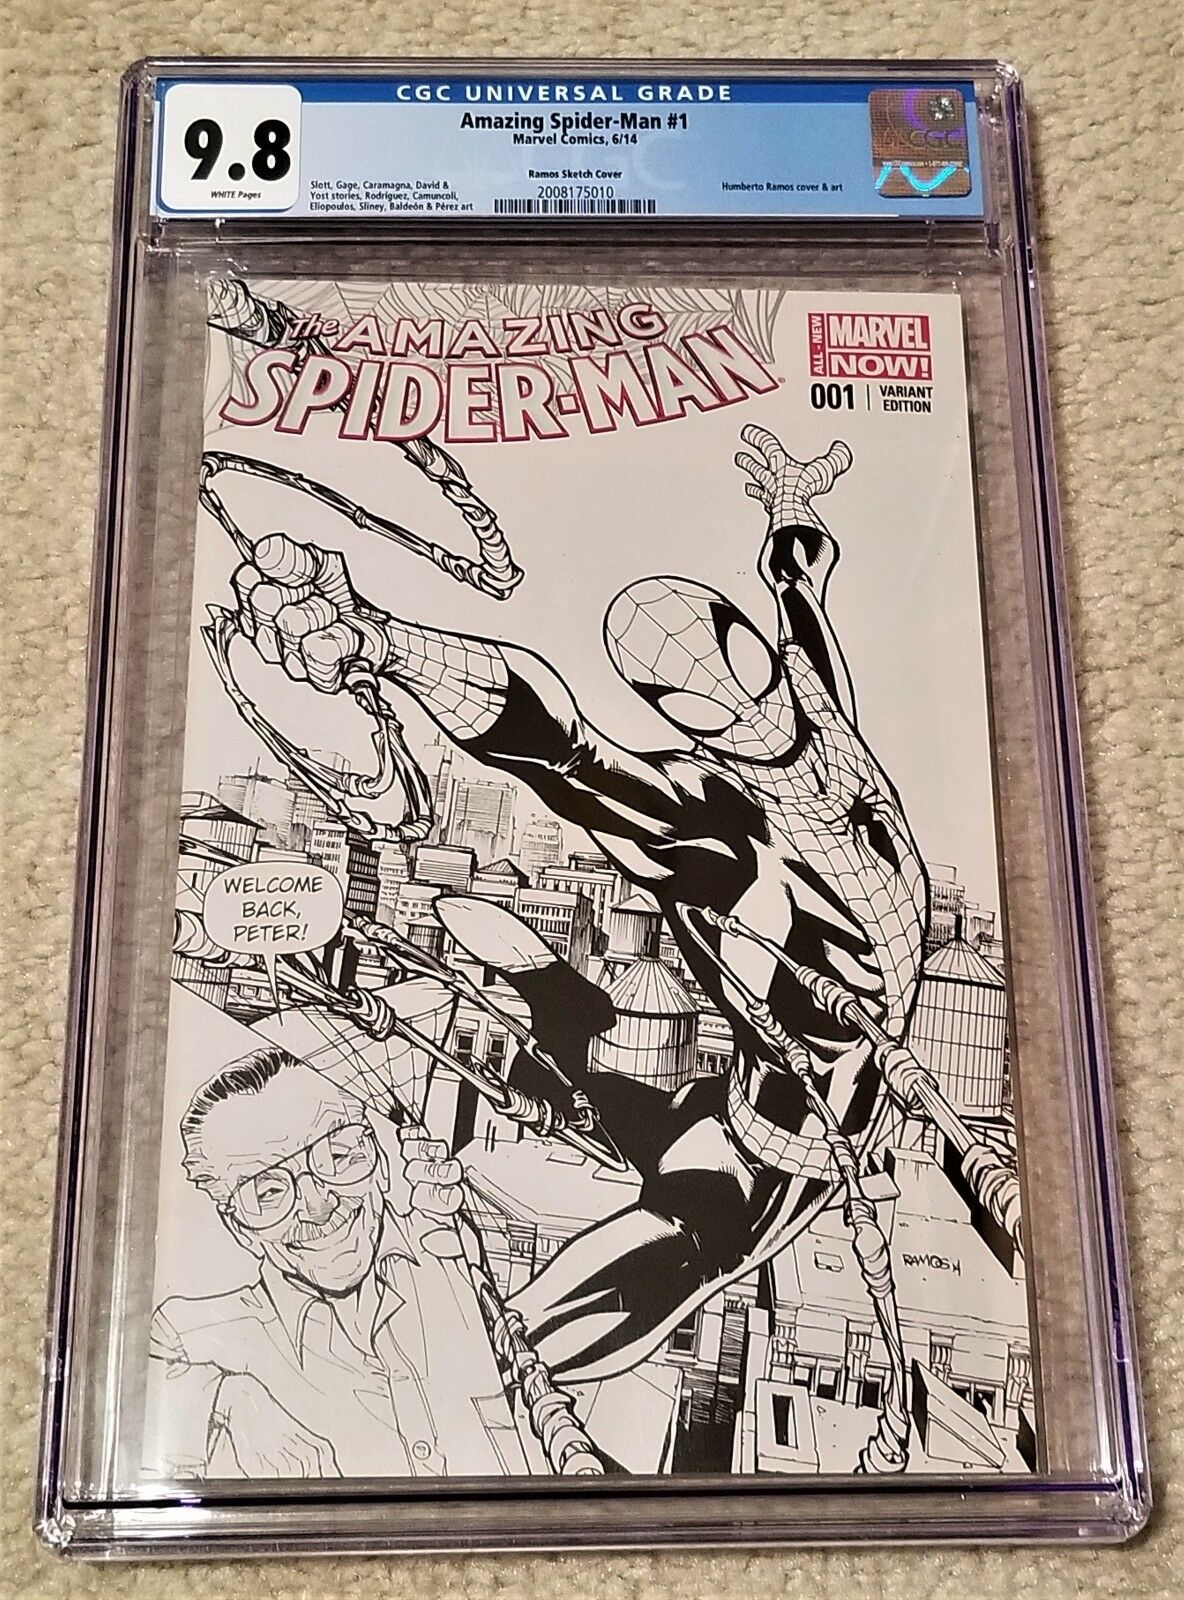 AMAZING SPIDER-MAN #1 CGC 9.8 HUMBERTO RAMOS STAN LEE FAN EXPO B&W VARIANT